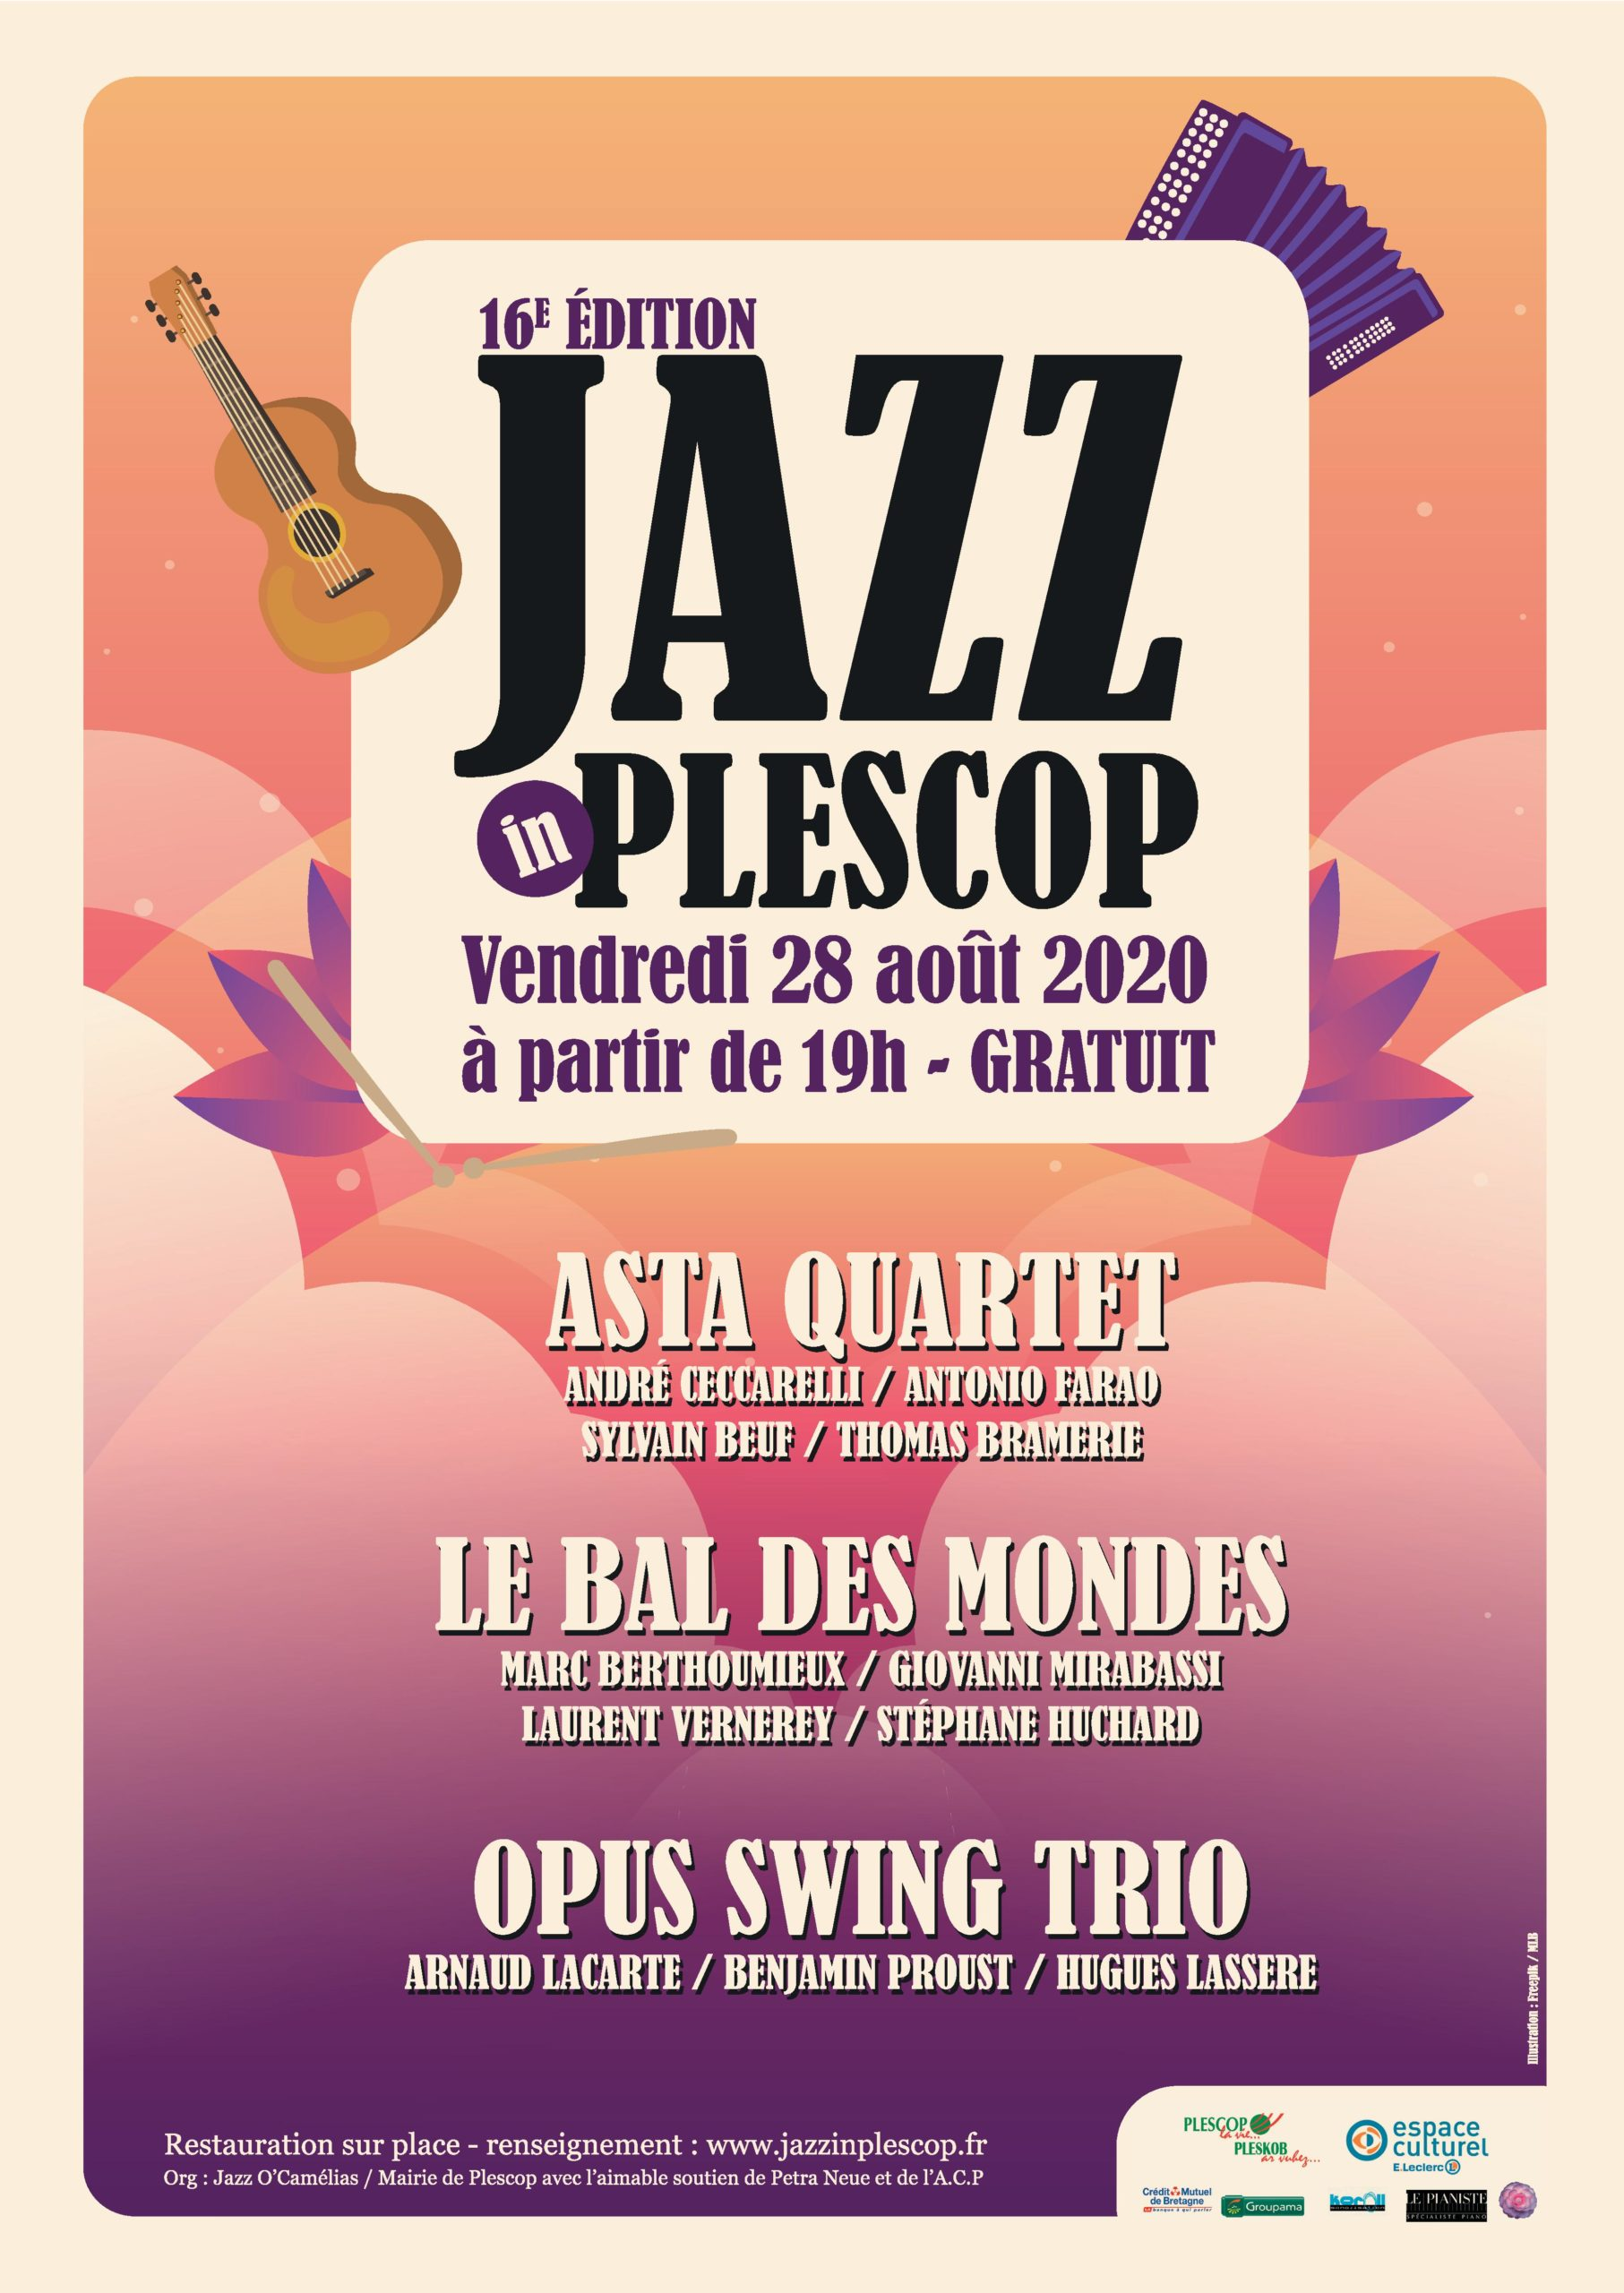 Affiche de l'édition 2020 de Jazz In Plescop